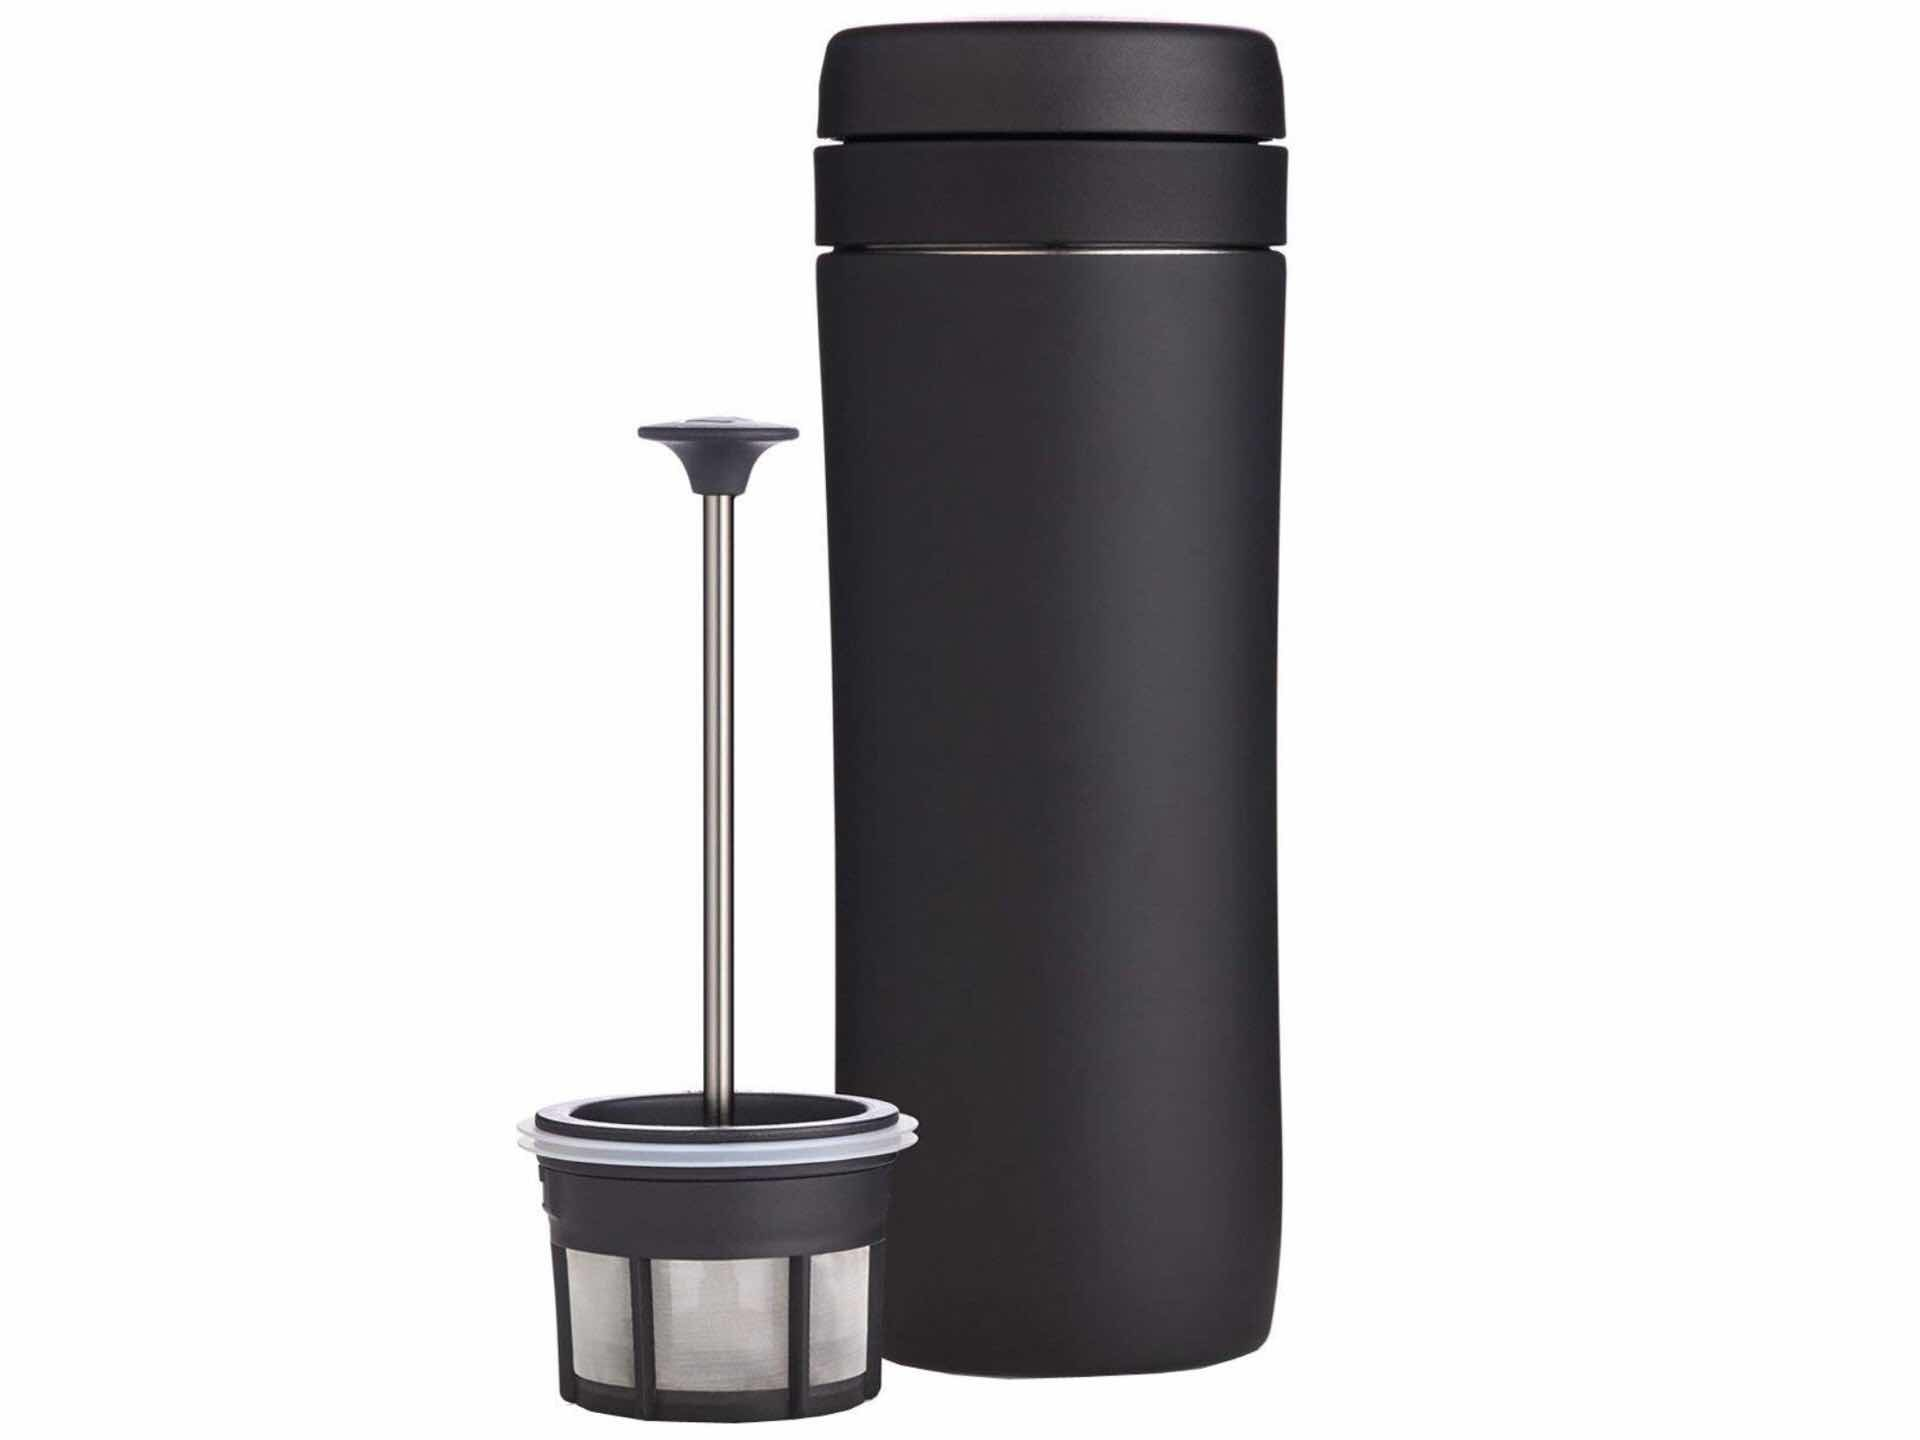 The travel-friendly Espro Press. ($31)